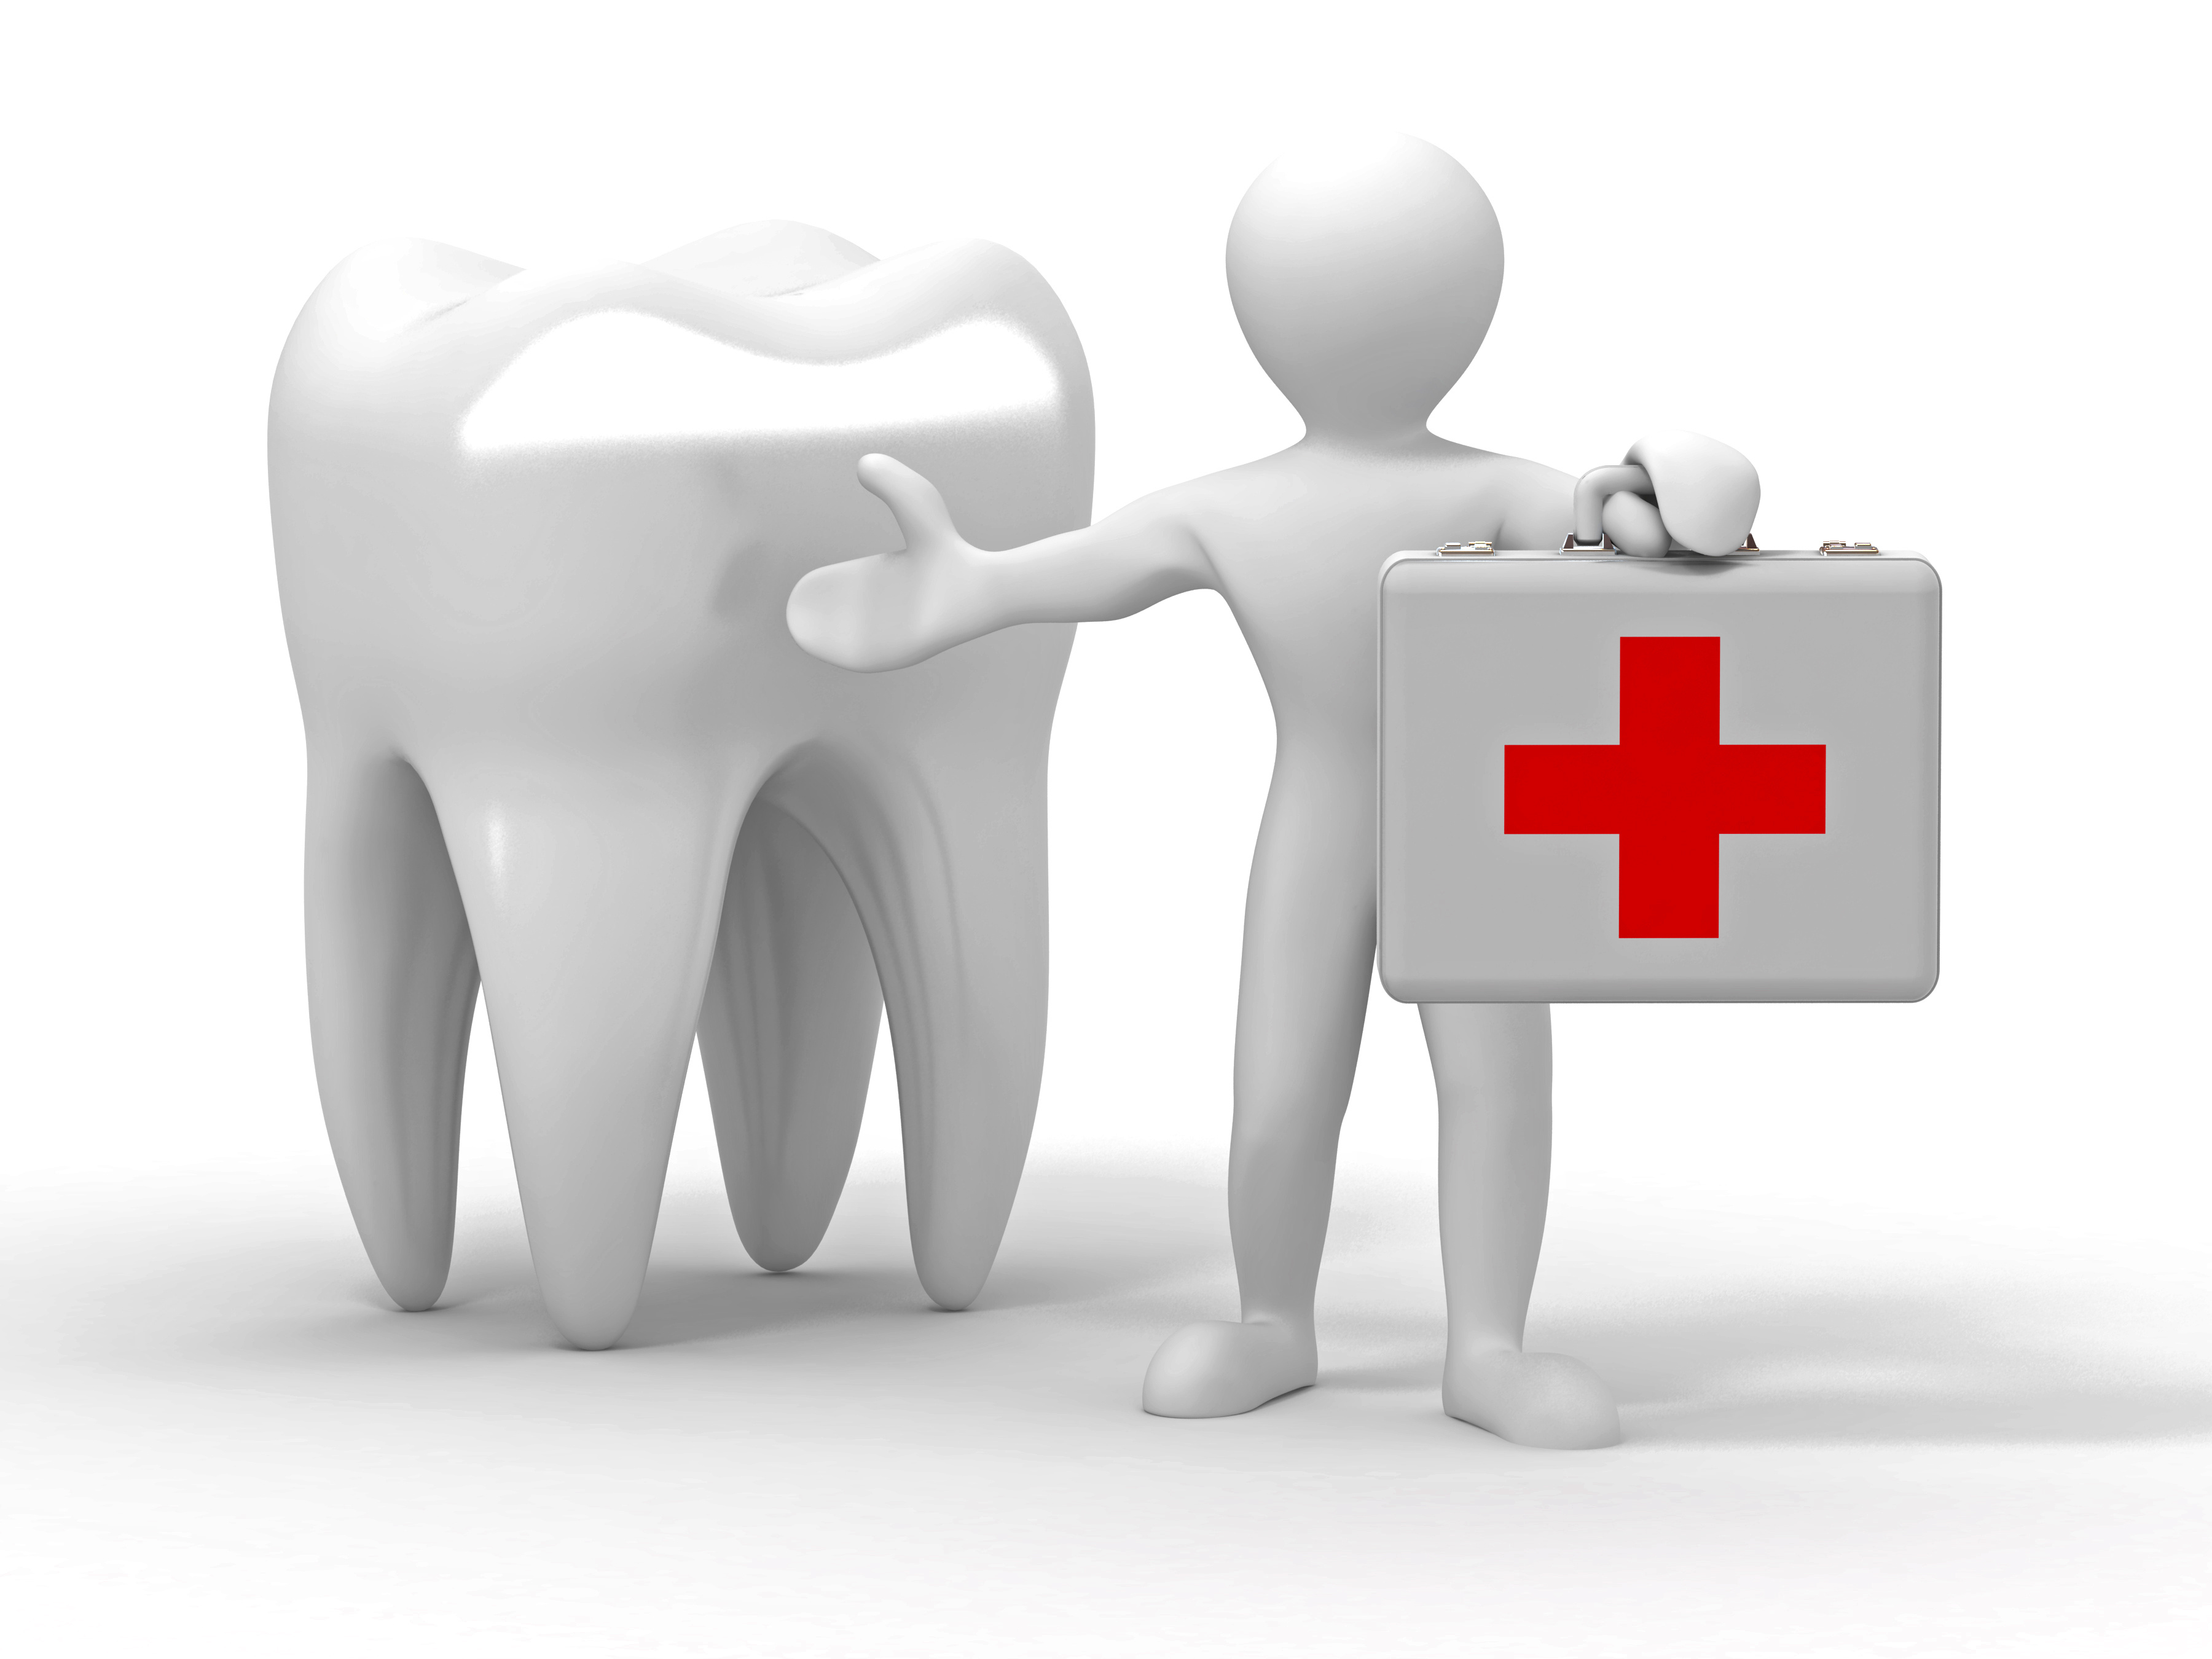 Phoenix family dentist |emergency dental, emergency dentist | Dr. Jakobsen